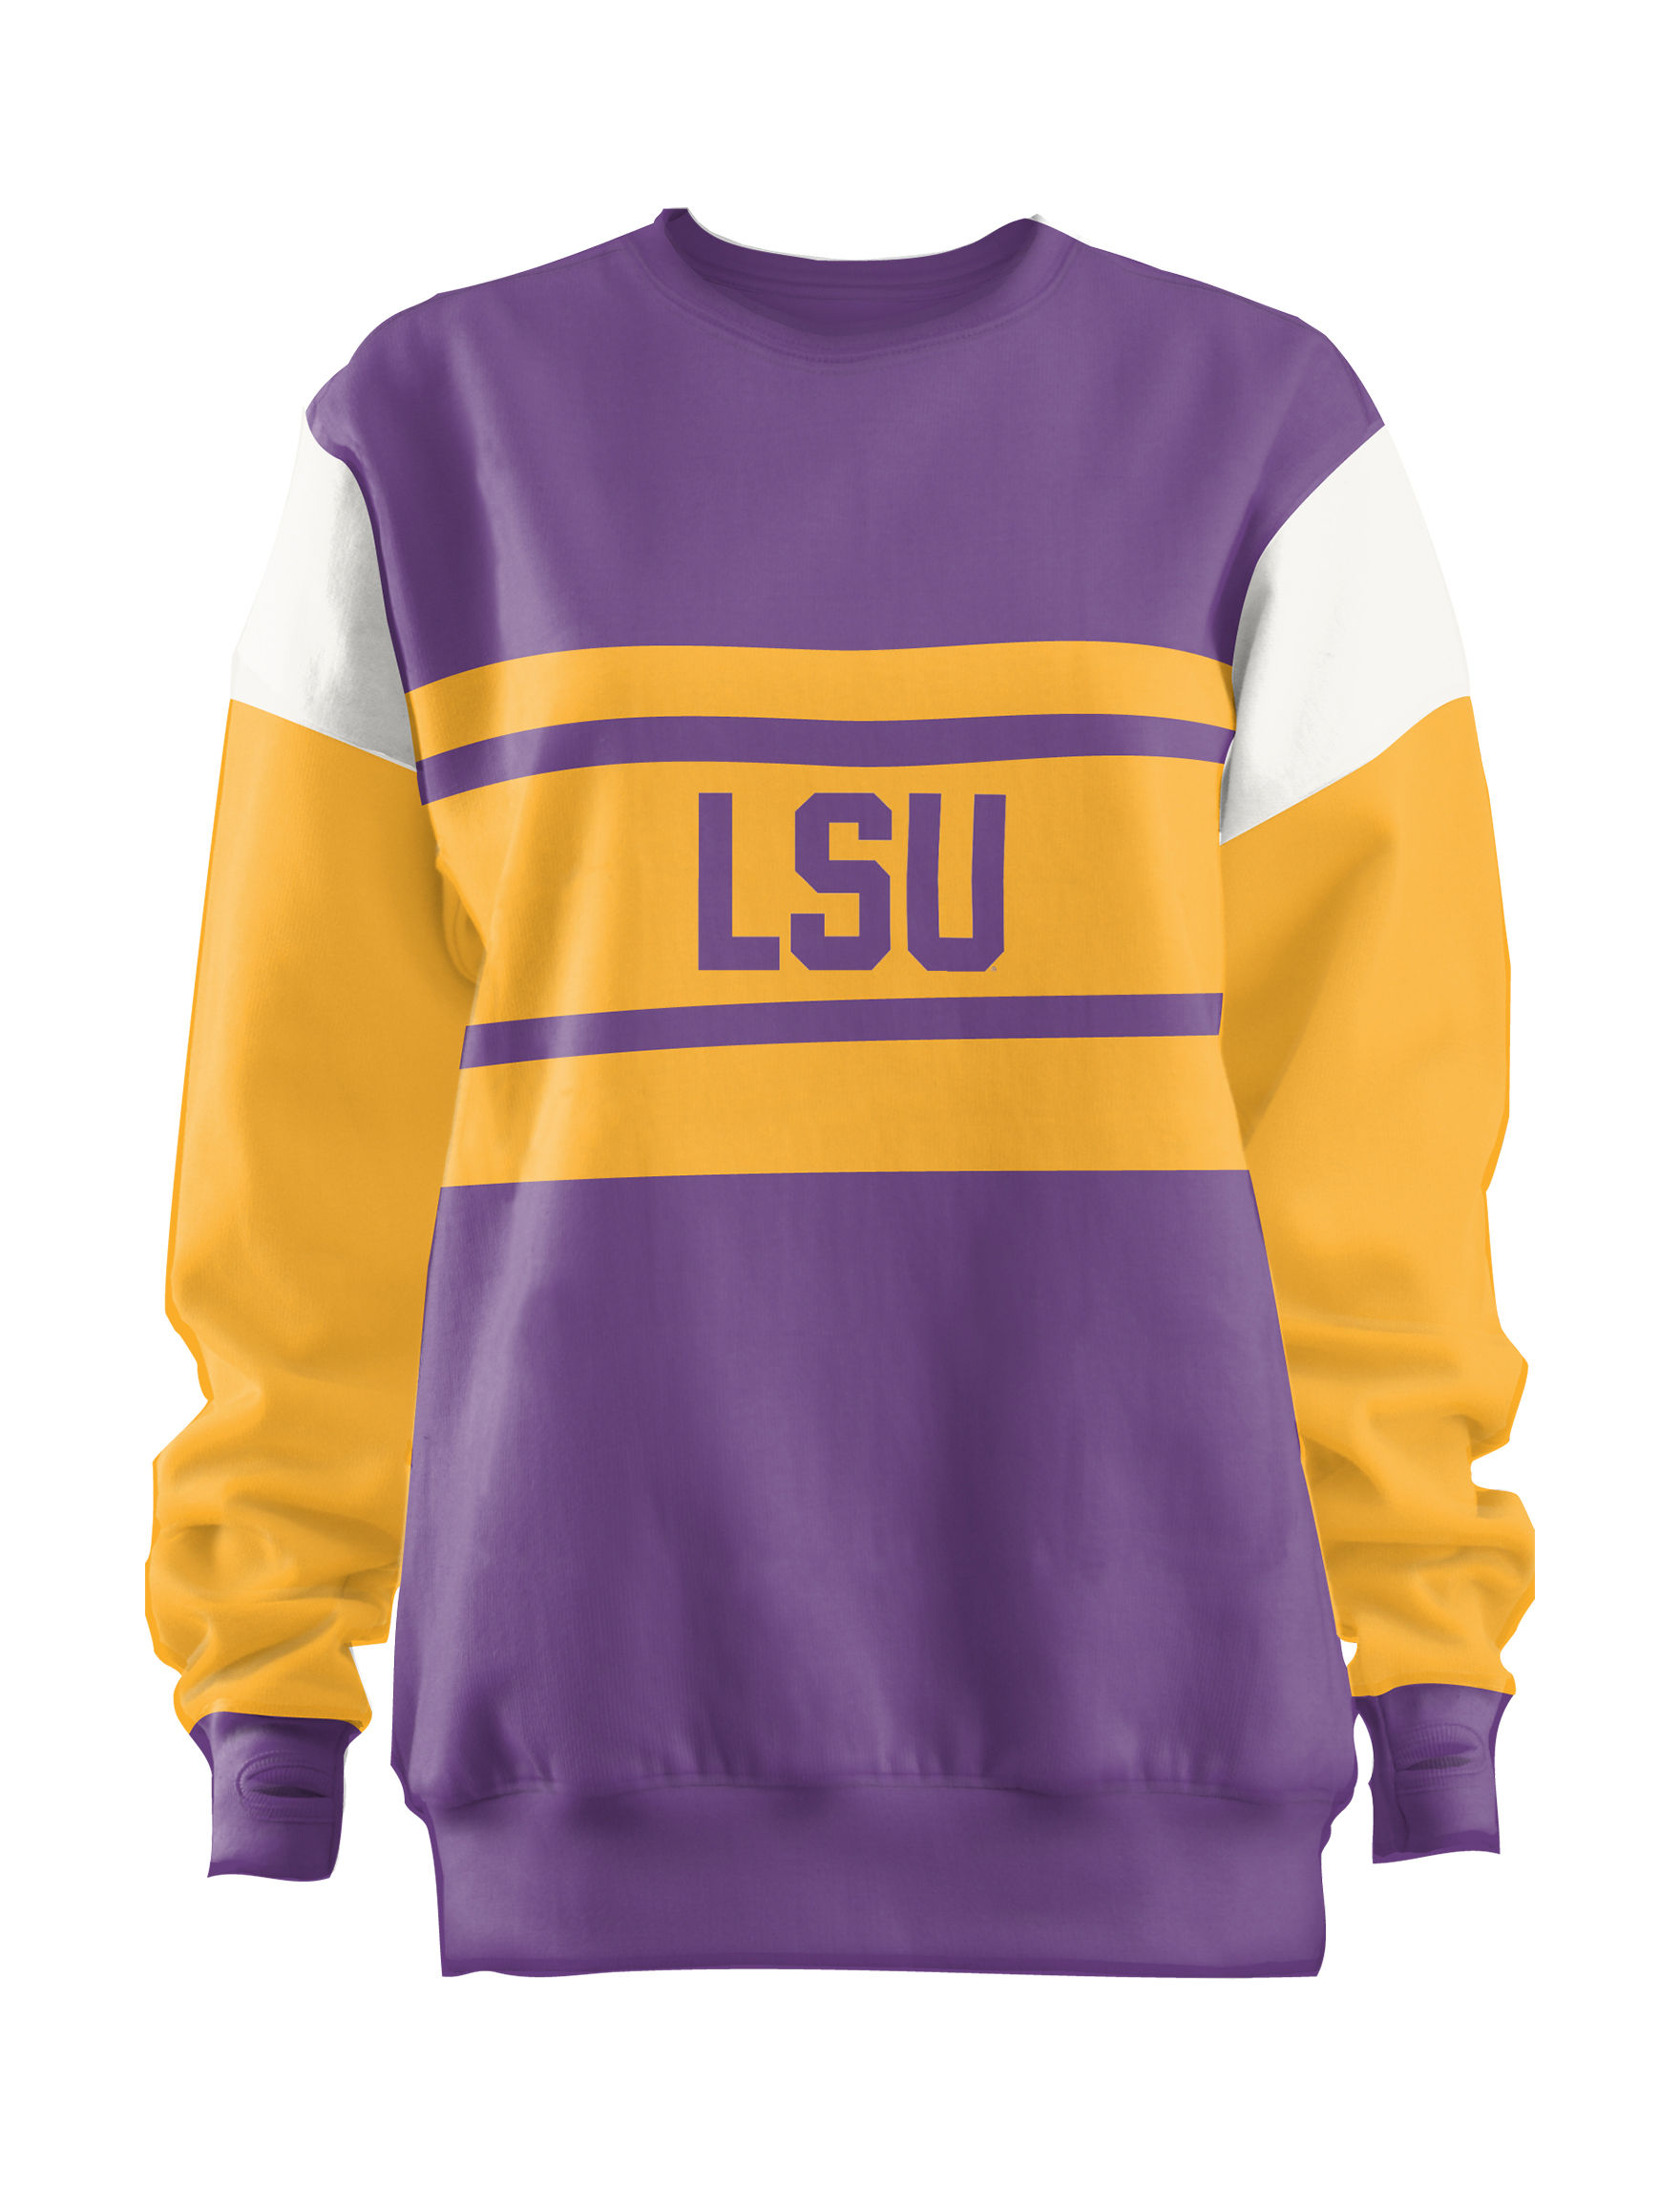 NCAA Purple / Gold Pull-overs Shirts & Blouses Tees & Tanks NCAA